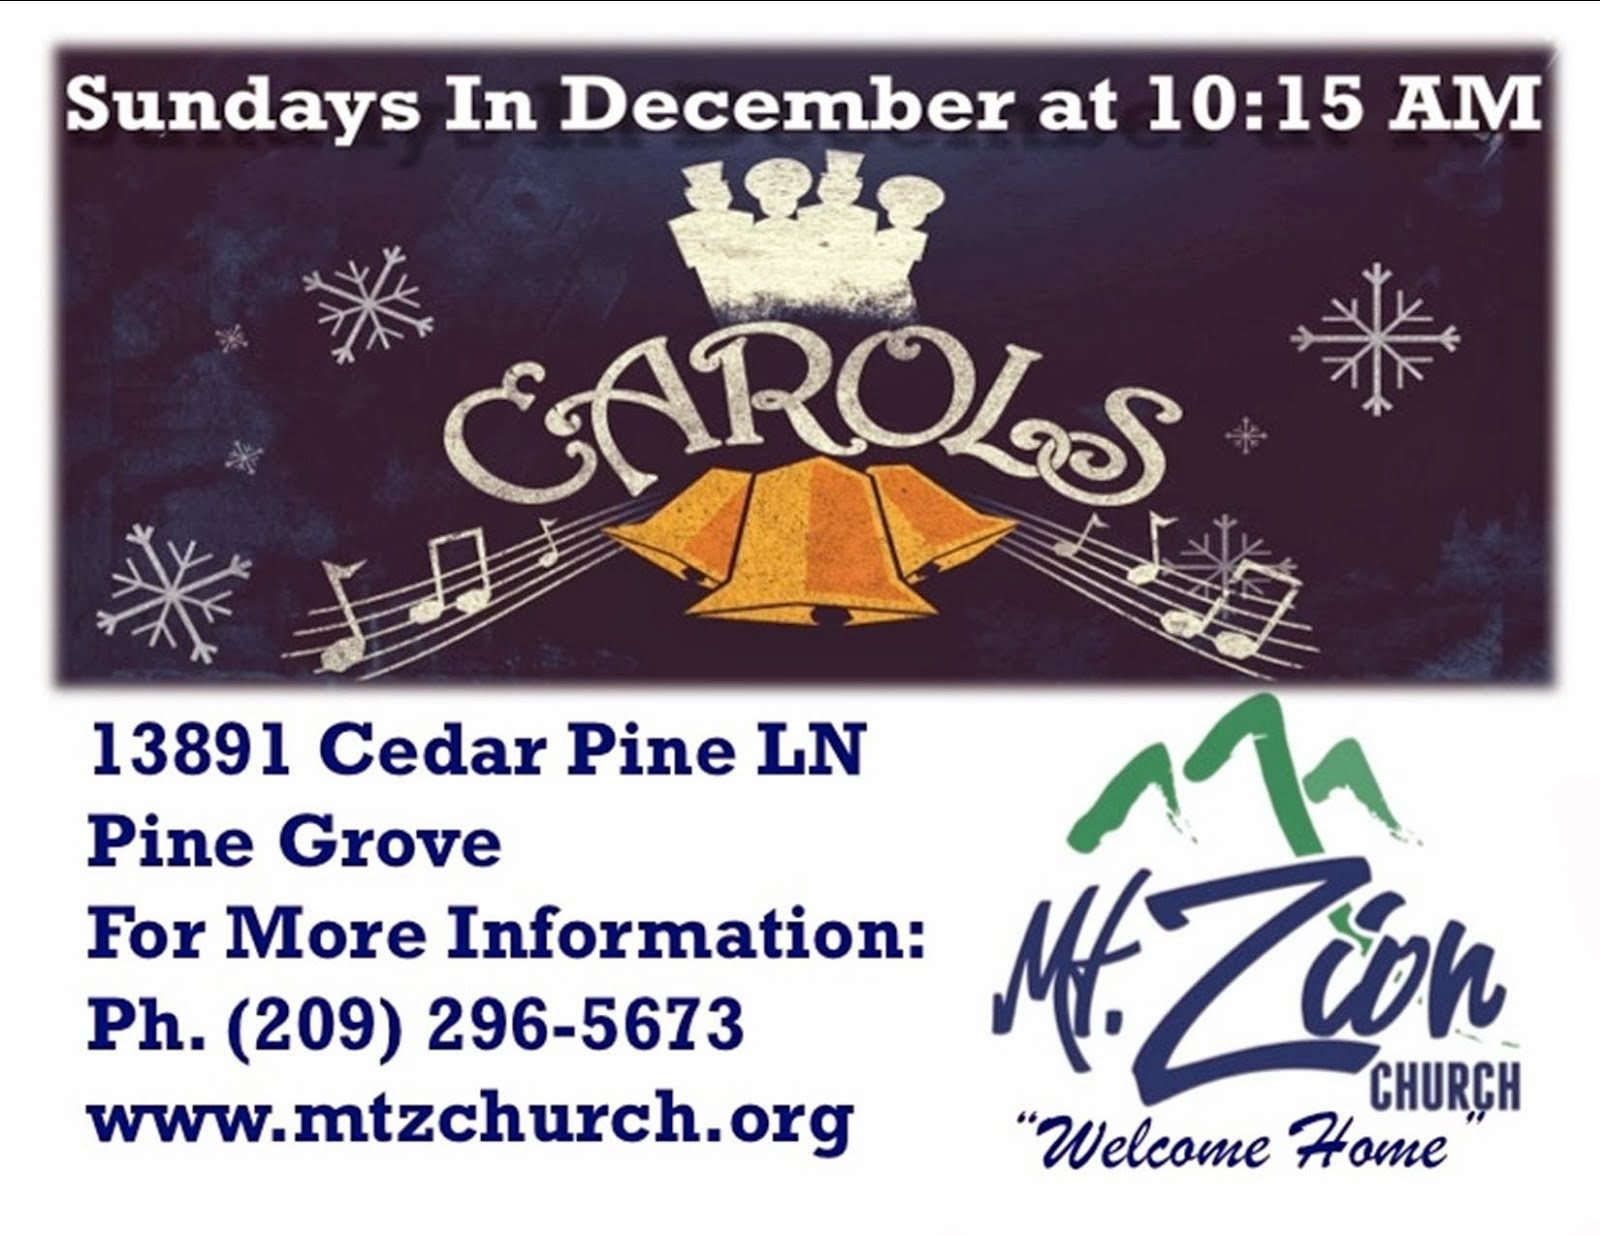 """Carols"" at Mt. Zion Church"